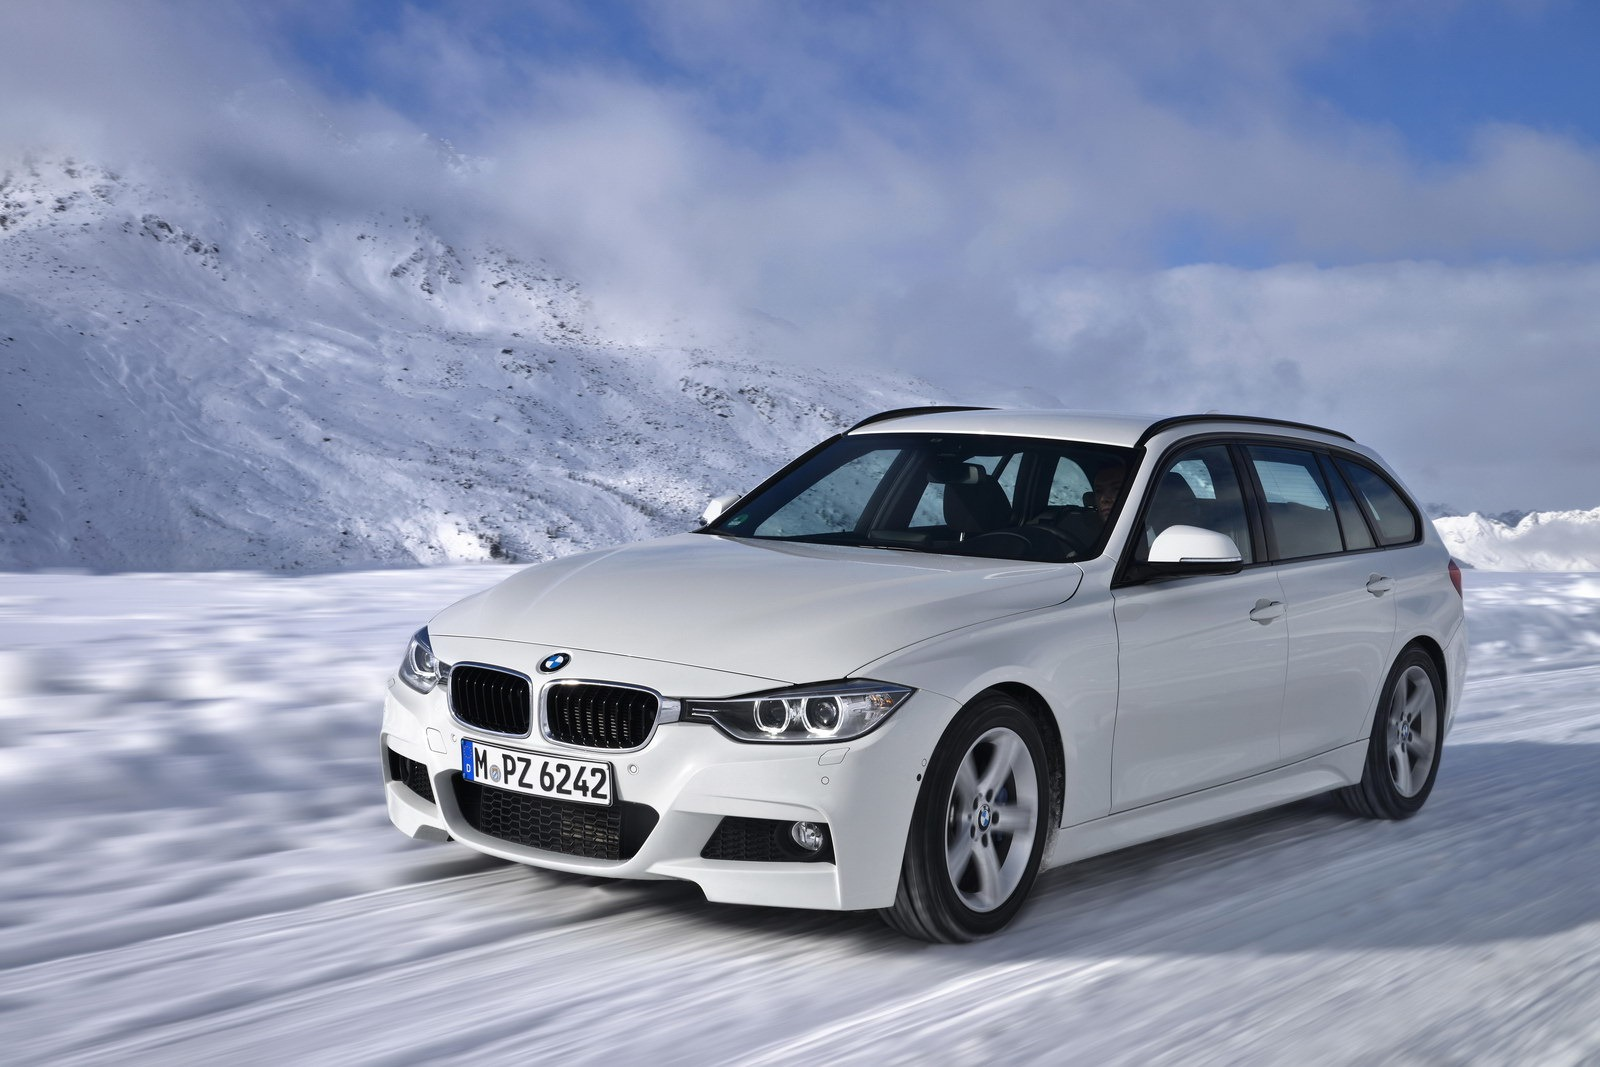 Bmw 3 Series Touring Xdrive Bmw Releases New Engines For 3 Series Touring And 10 New